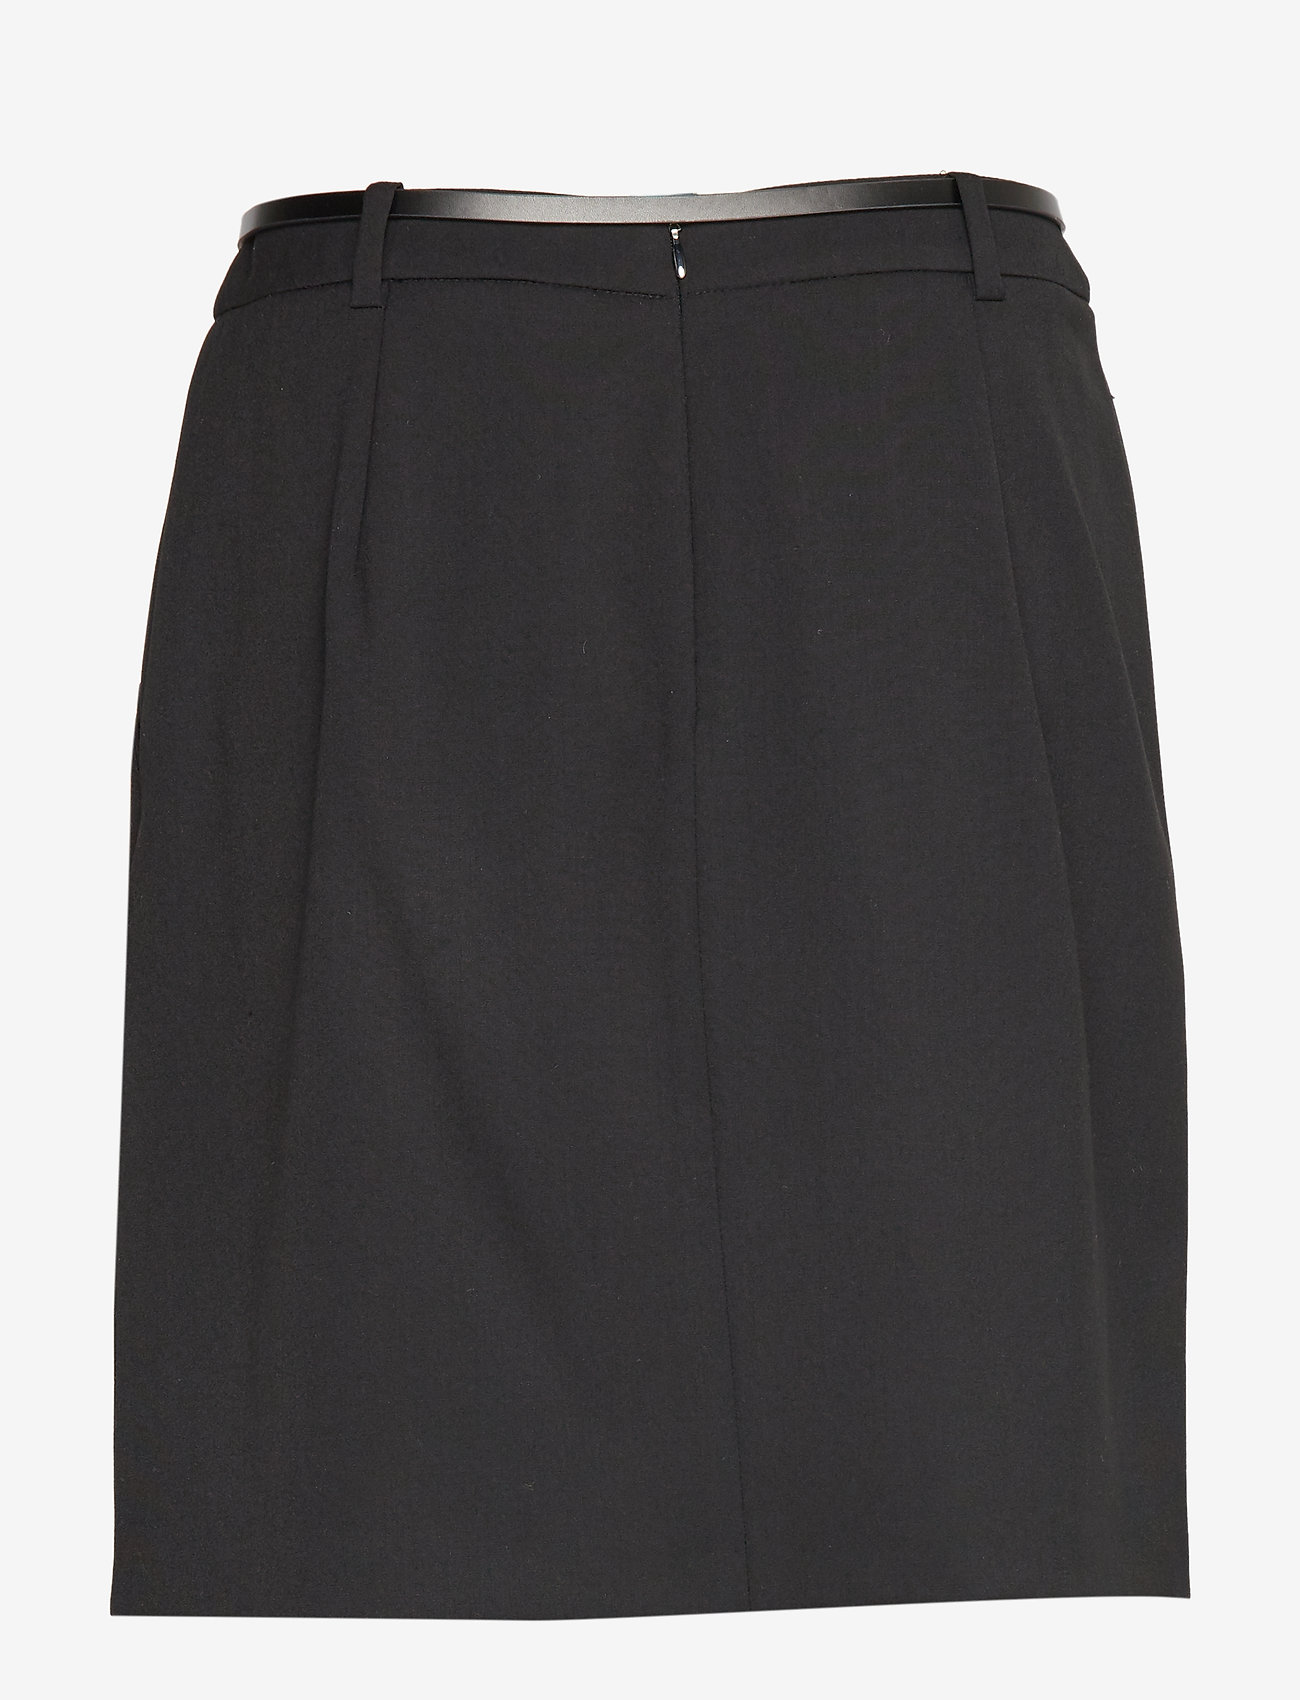 Esprit Collection - Skirts woven - midi skirts - black - 1